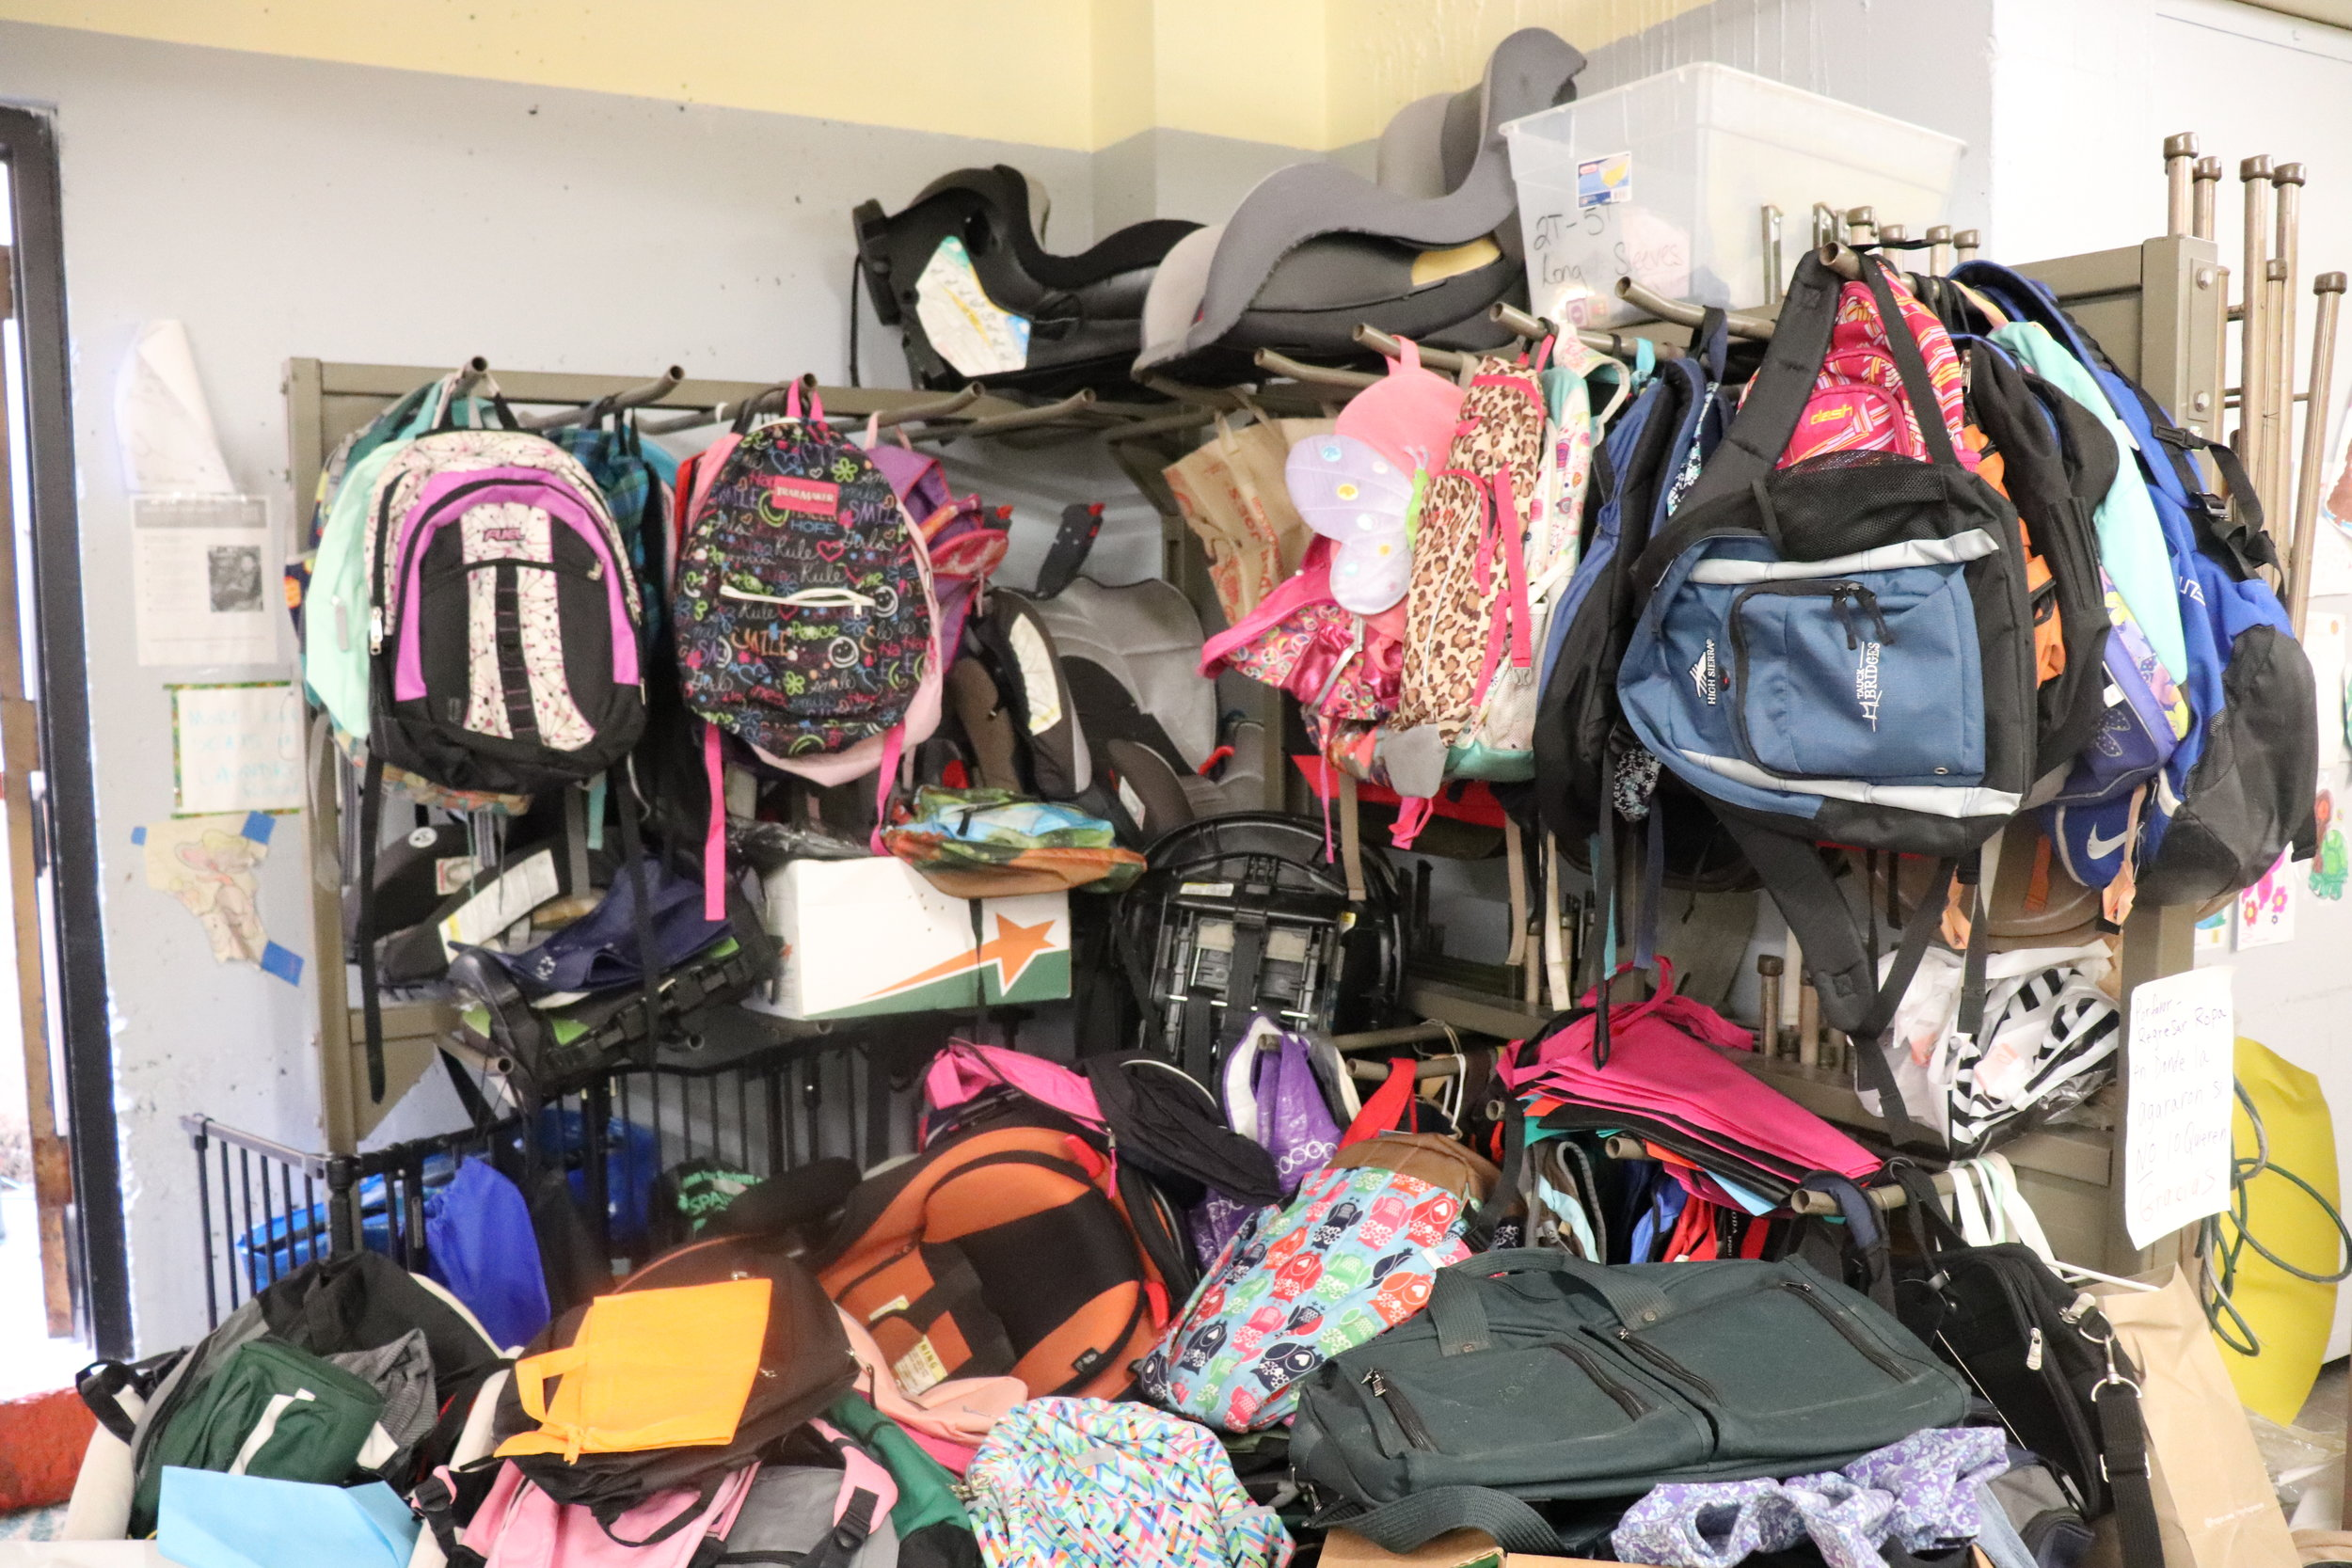 These are donated car seats and backpacks in the entryway of The Inn Project. Backpacks for migrants on either side of the border are very important. Others have been robbed when carrying their belongings in plastic bags since they are noticeably immigrants. The Inn Project currently needs children's clothing, size medium adult clothing, shoes, backpacks, towels and laundry supplies. Donations are always accepted at www.theinnumc.org